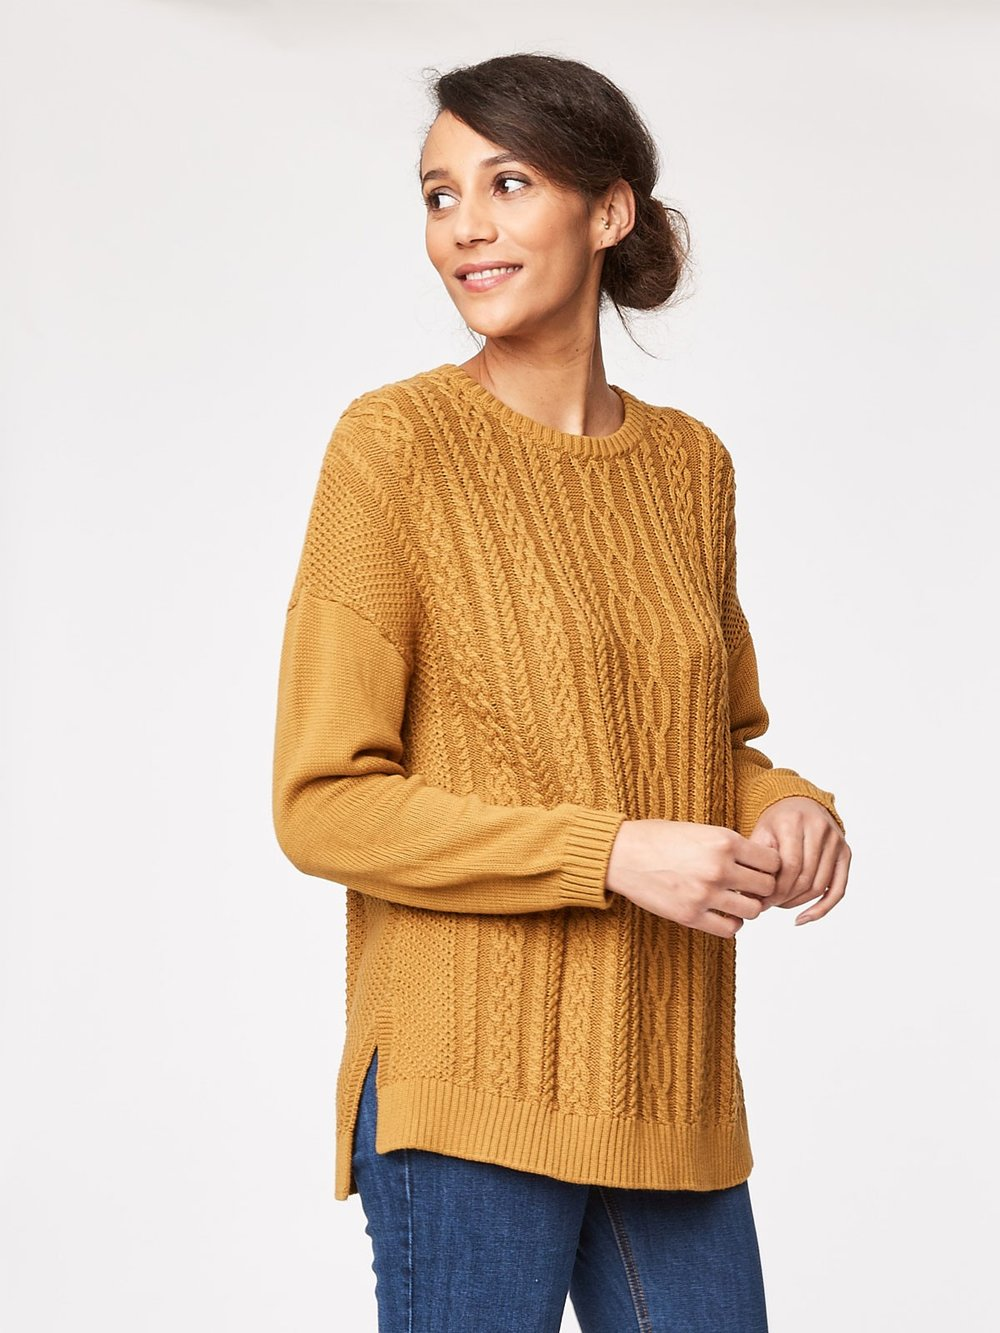 Cozy Up In These 12 Sustainable Sweaters For Fall & Winter 2017